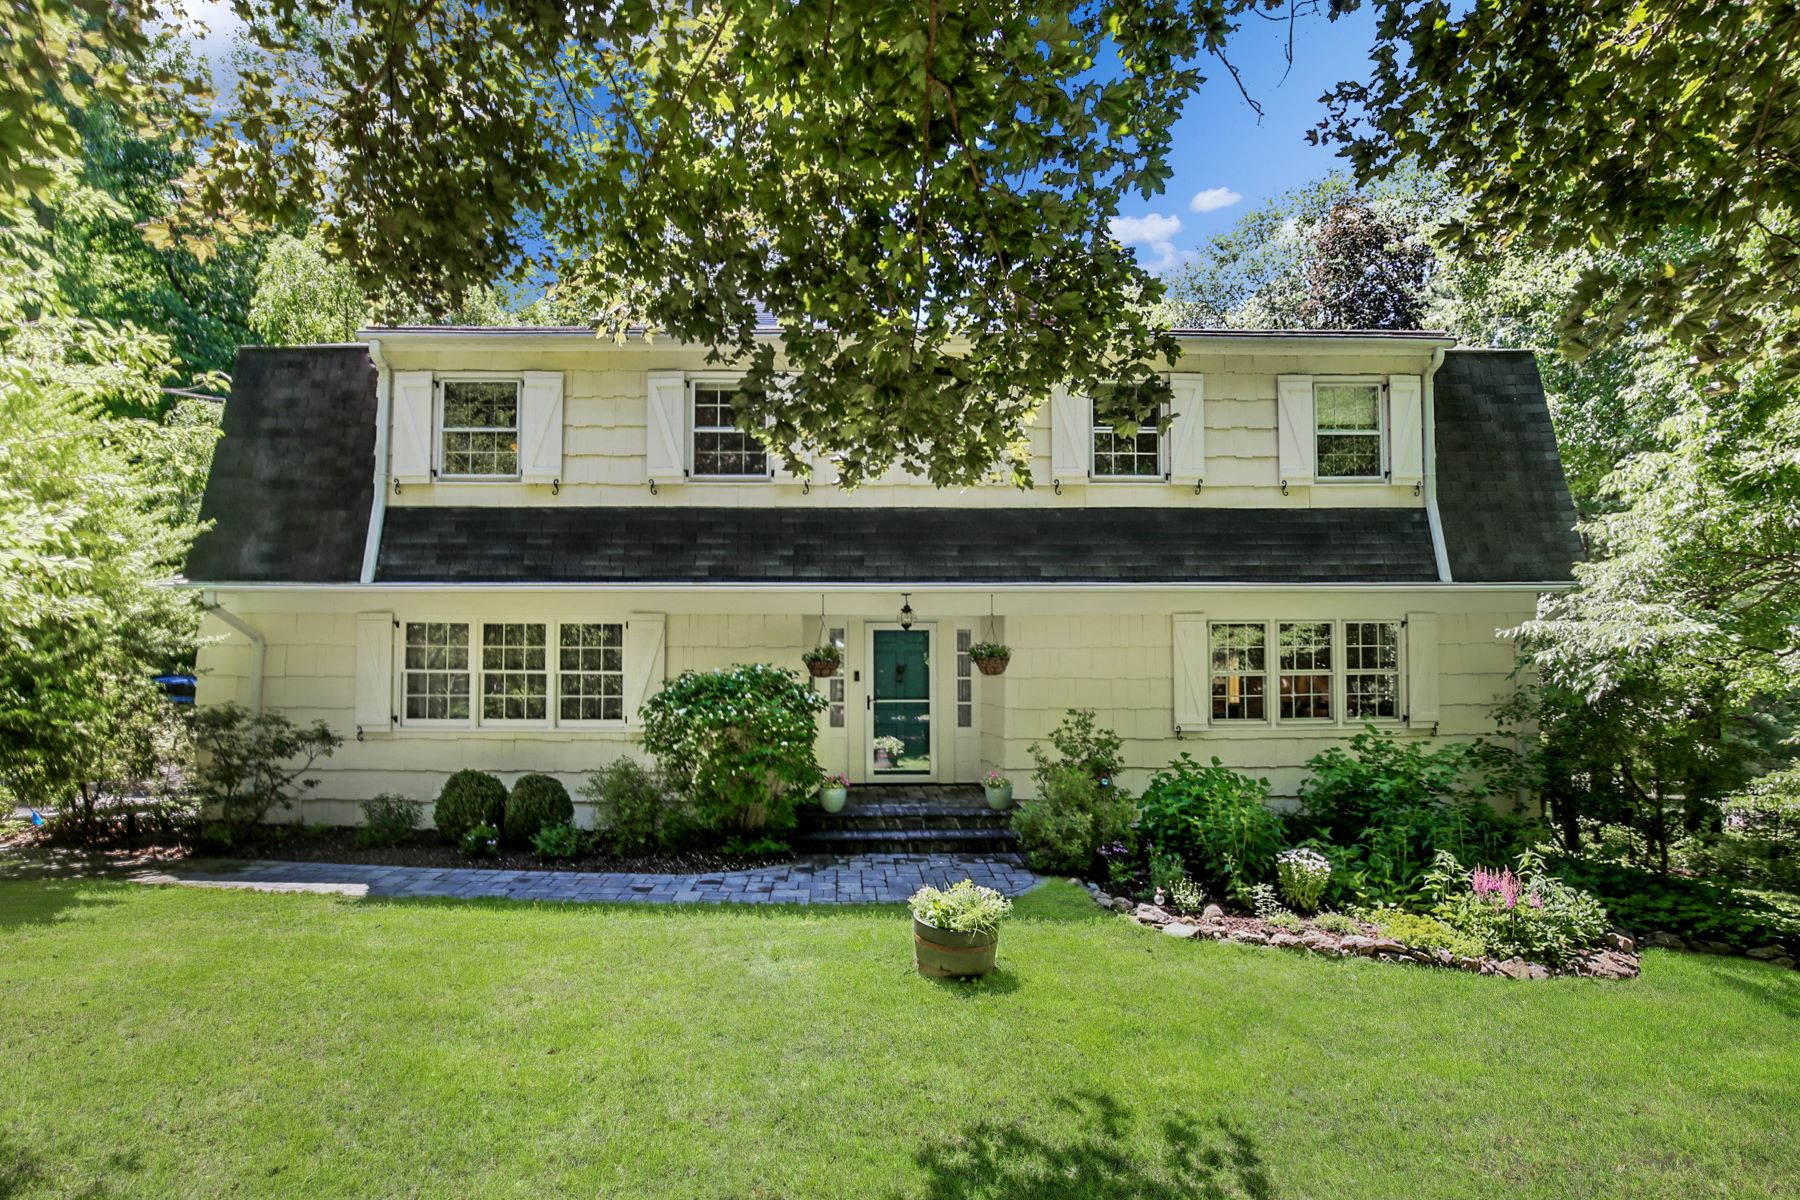 Single Family Homes for Sale at Privacy Abounds at this Updated Colonial! 12 James Road Mount Kisco, New York 10549 United States